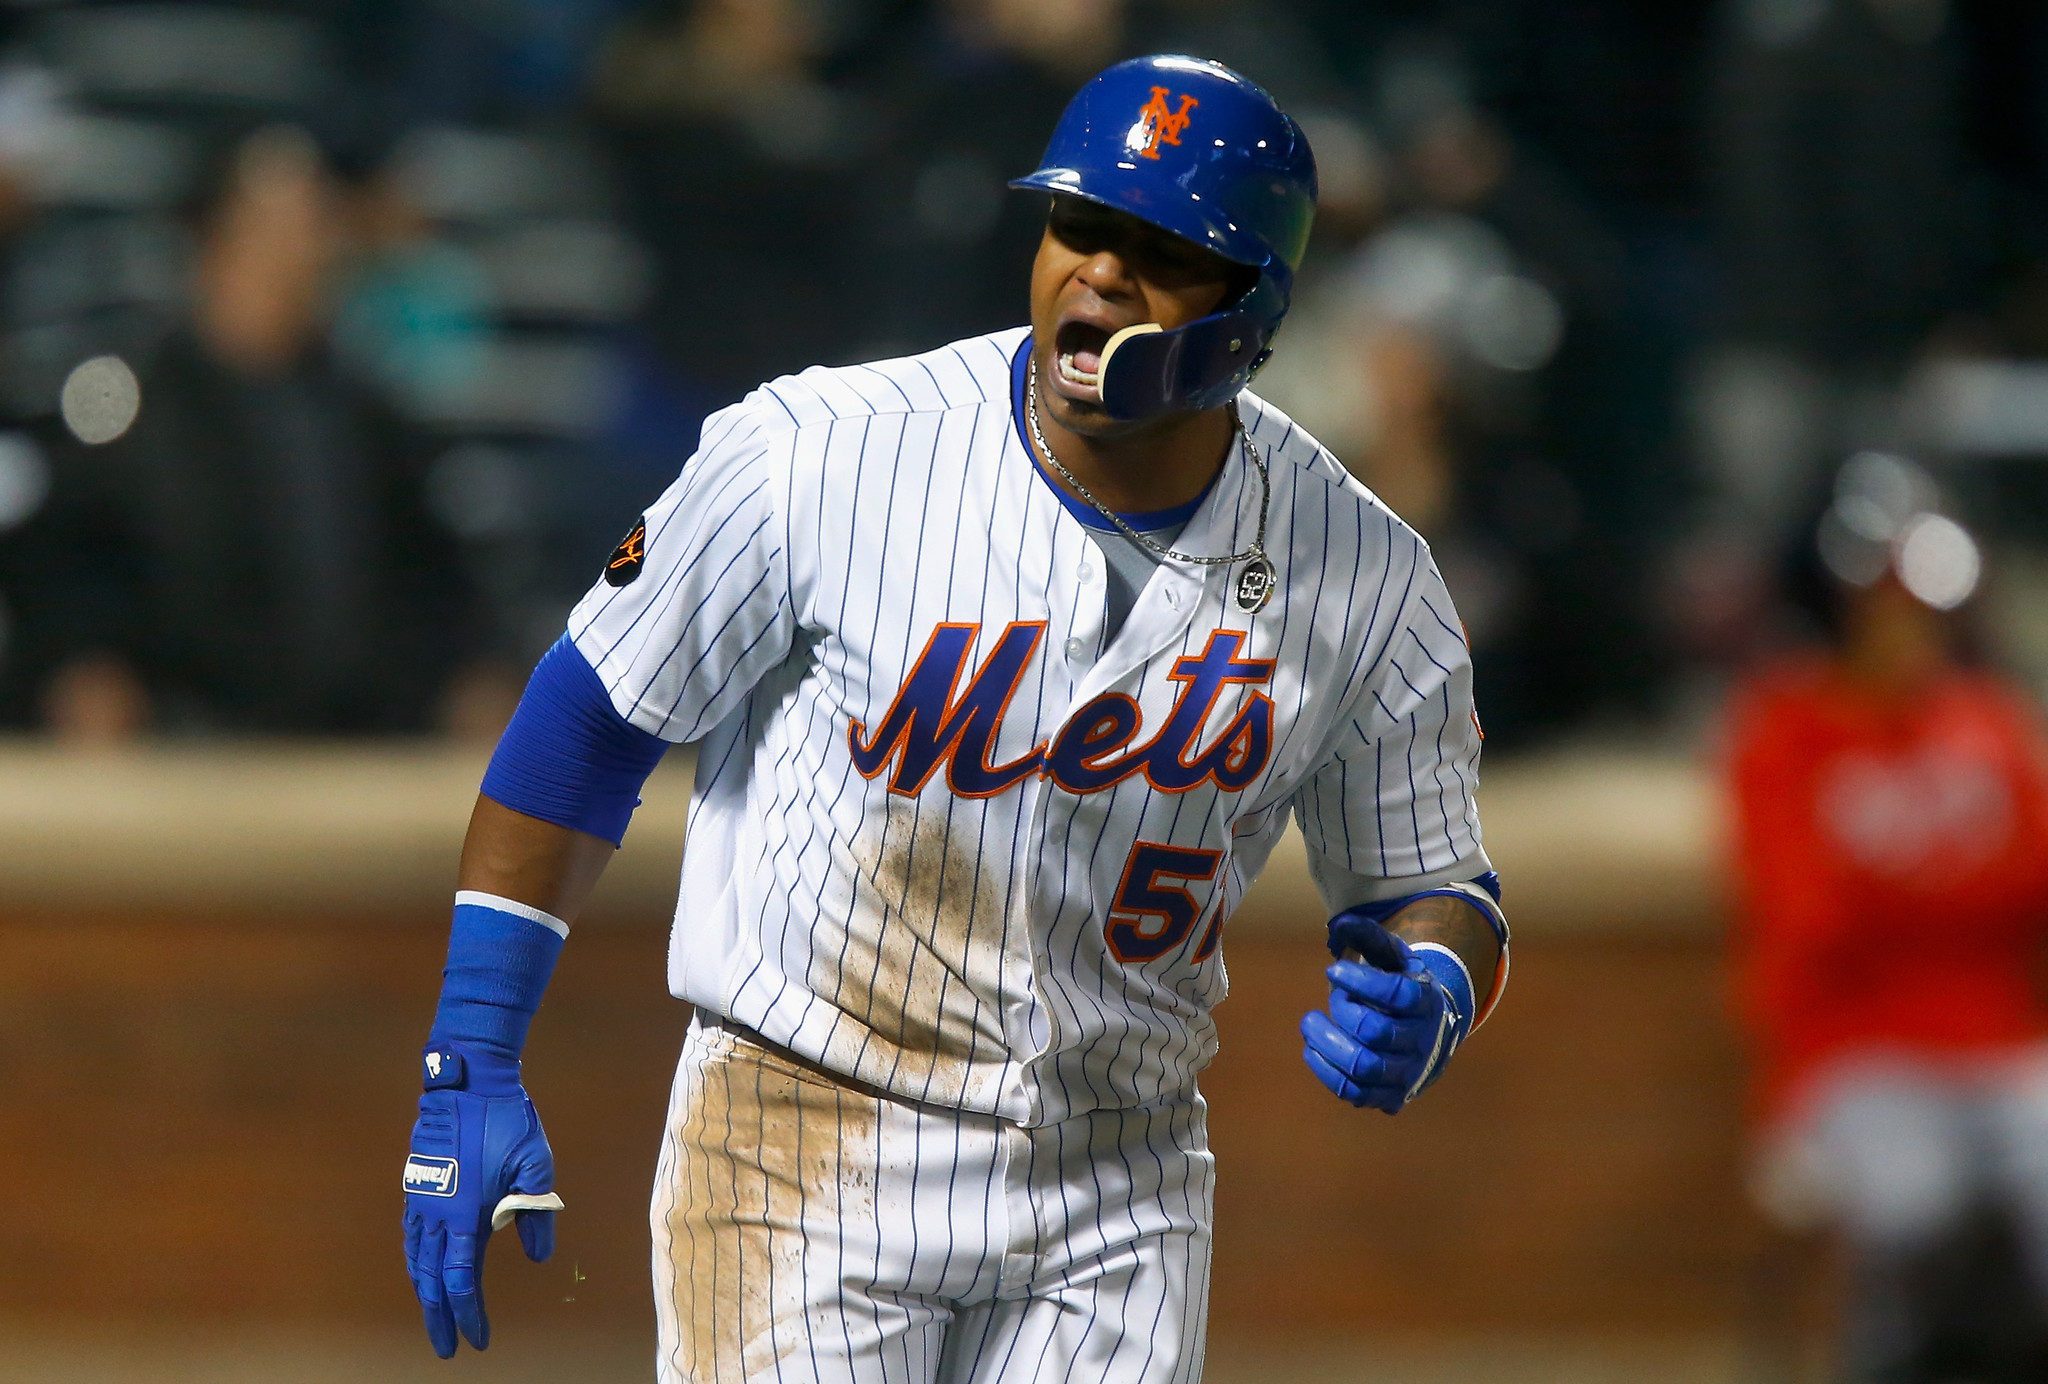 Injured Mets slugger Yoenis Cespedes has started running, hitting and throwing again